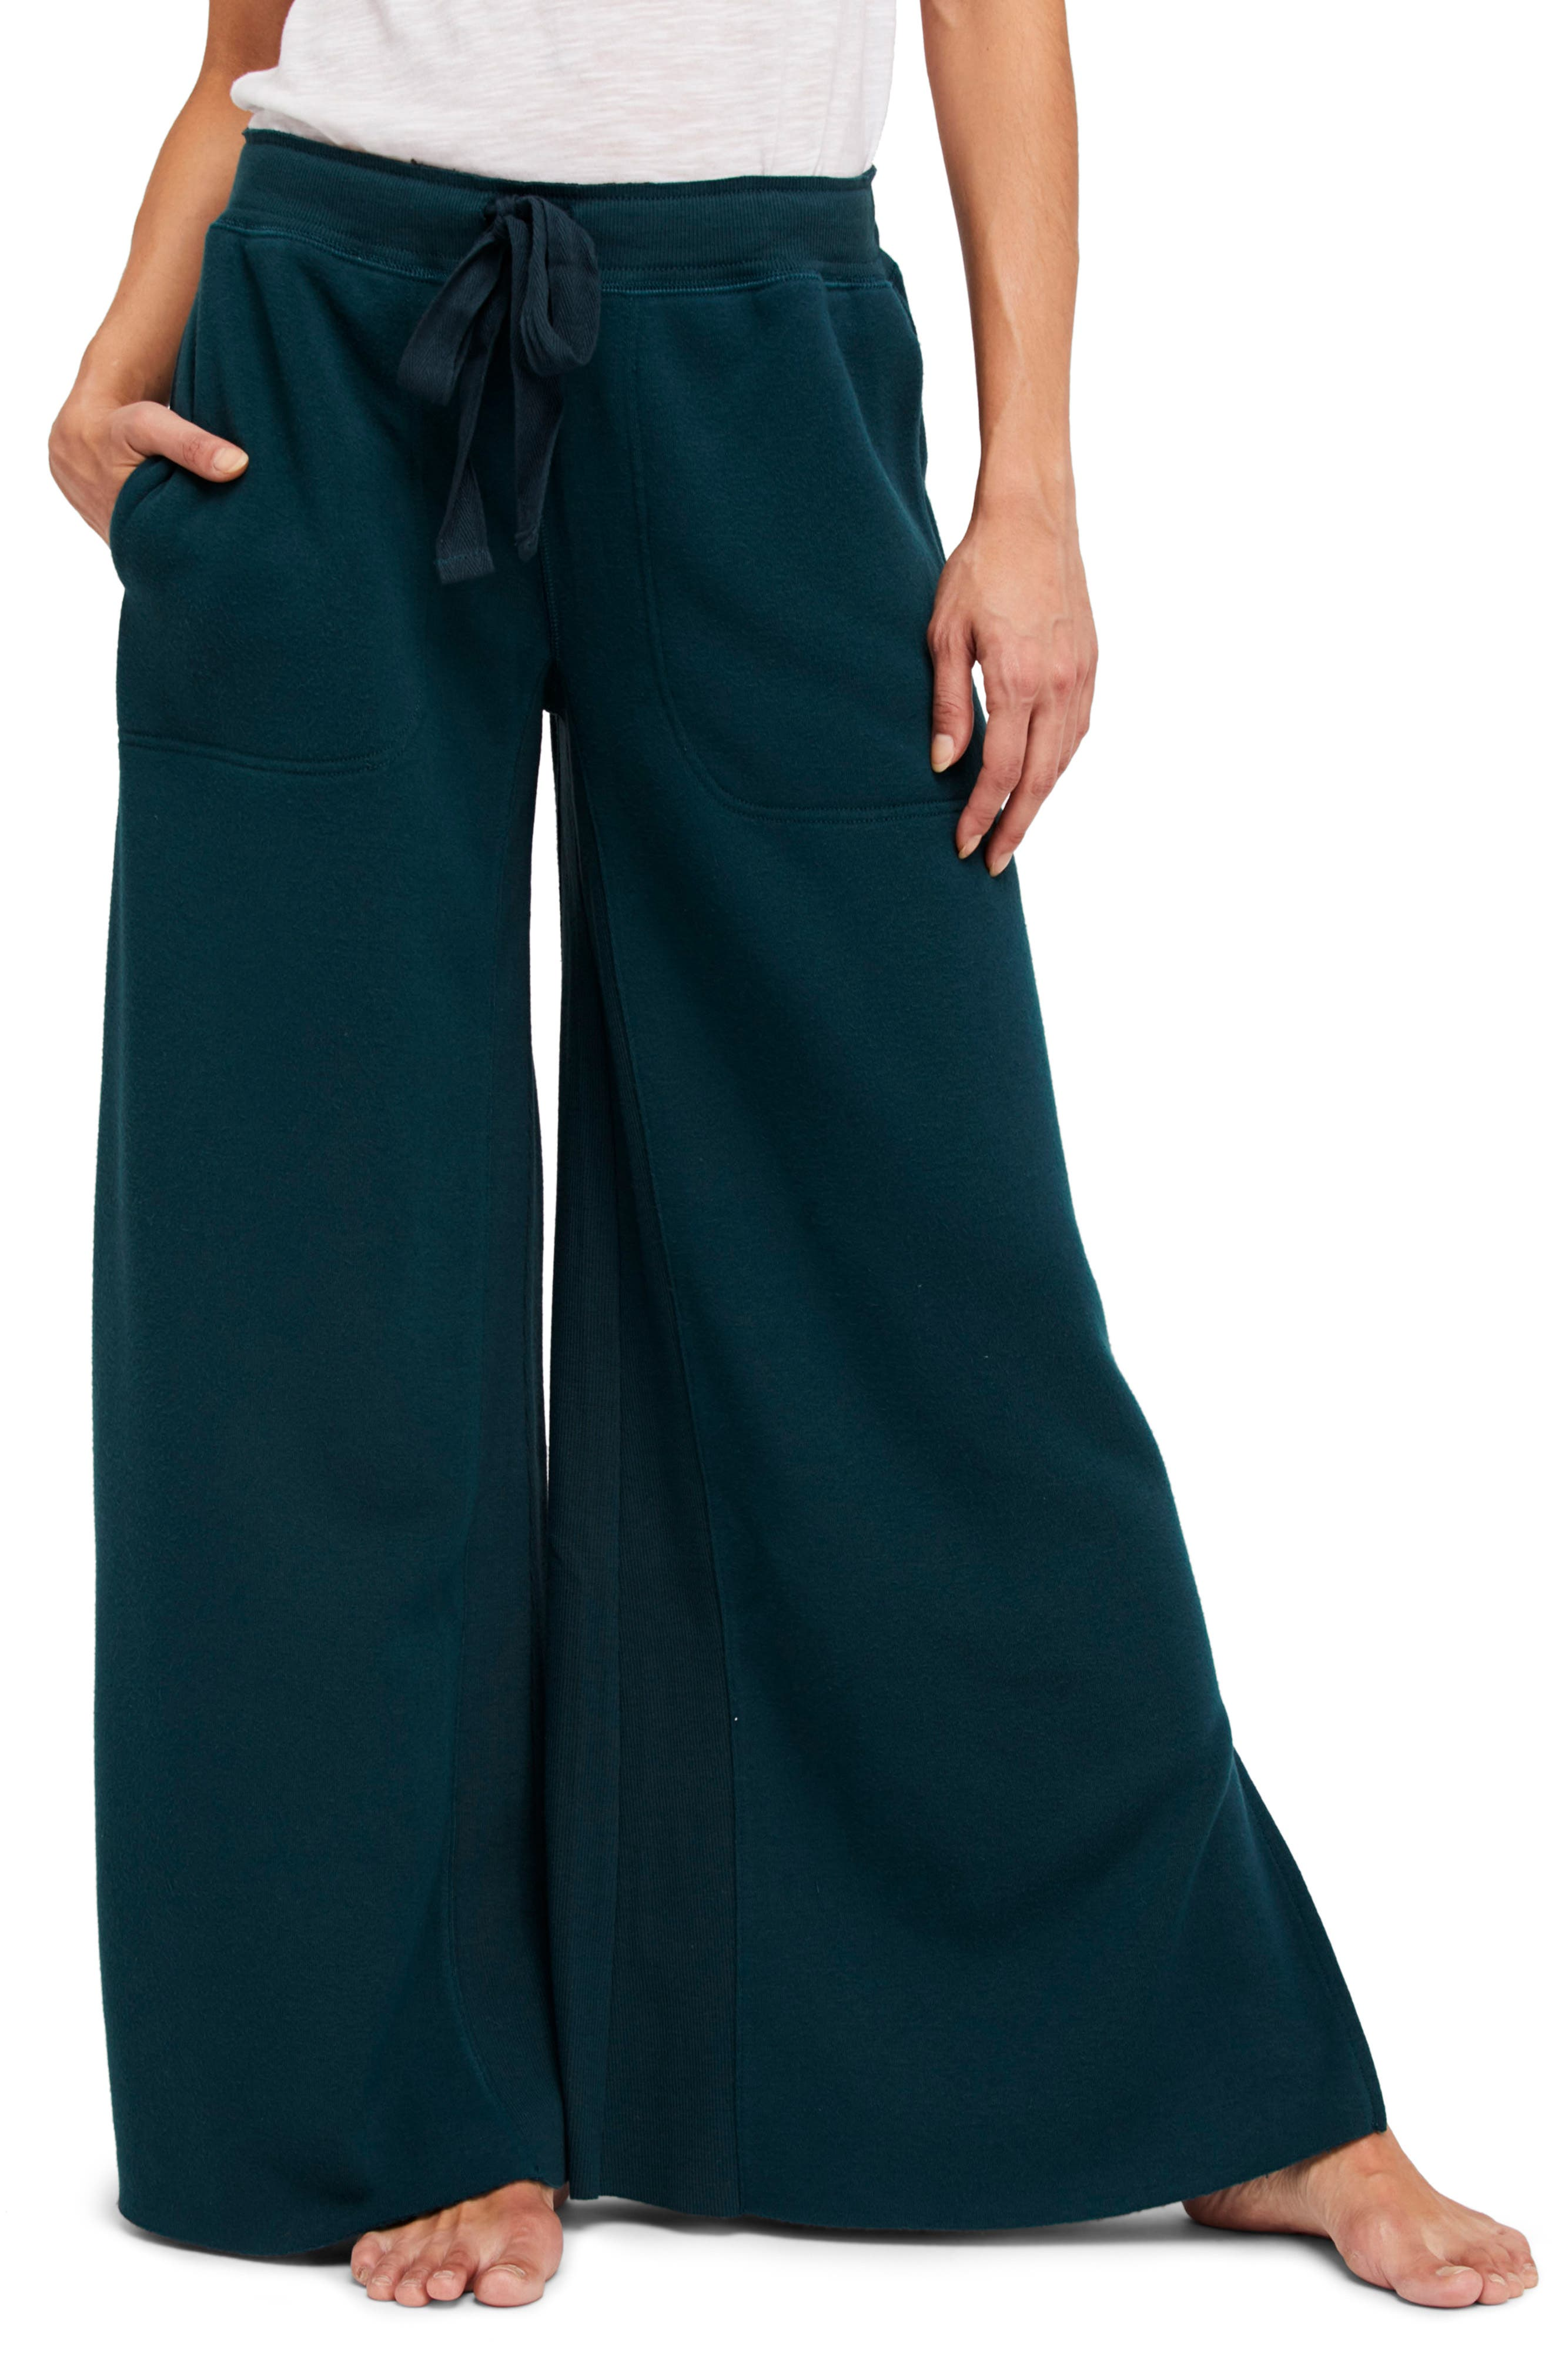 Double Axel Jogger Pants,                         Main,                         color, Turquoise